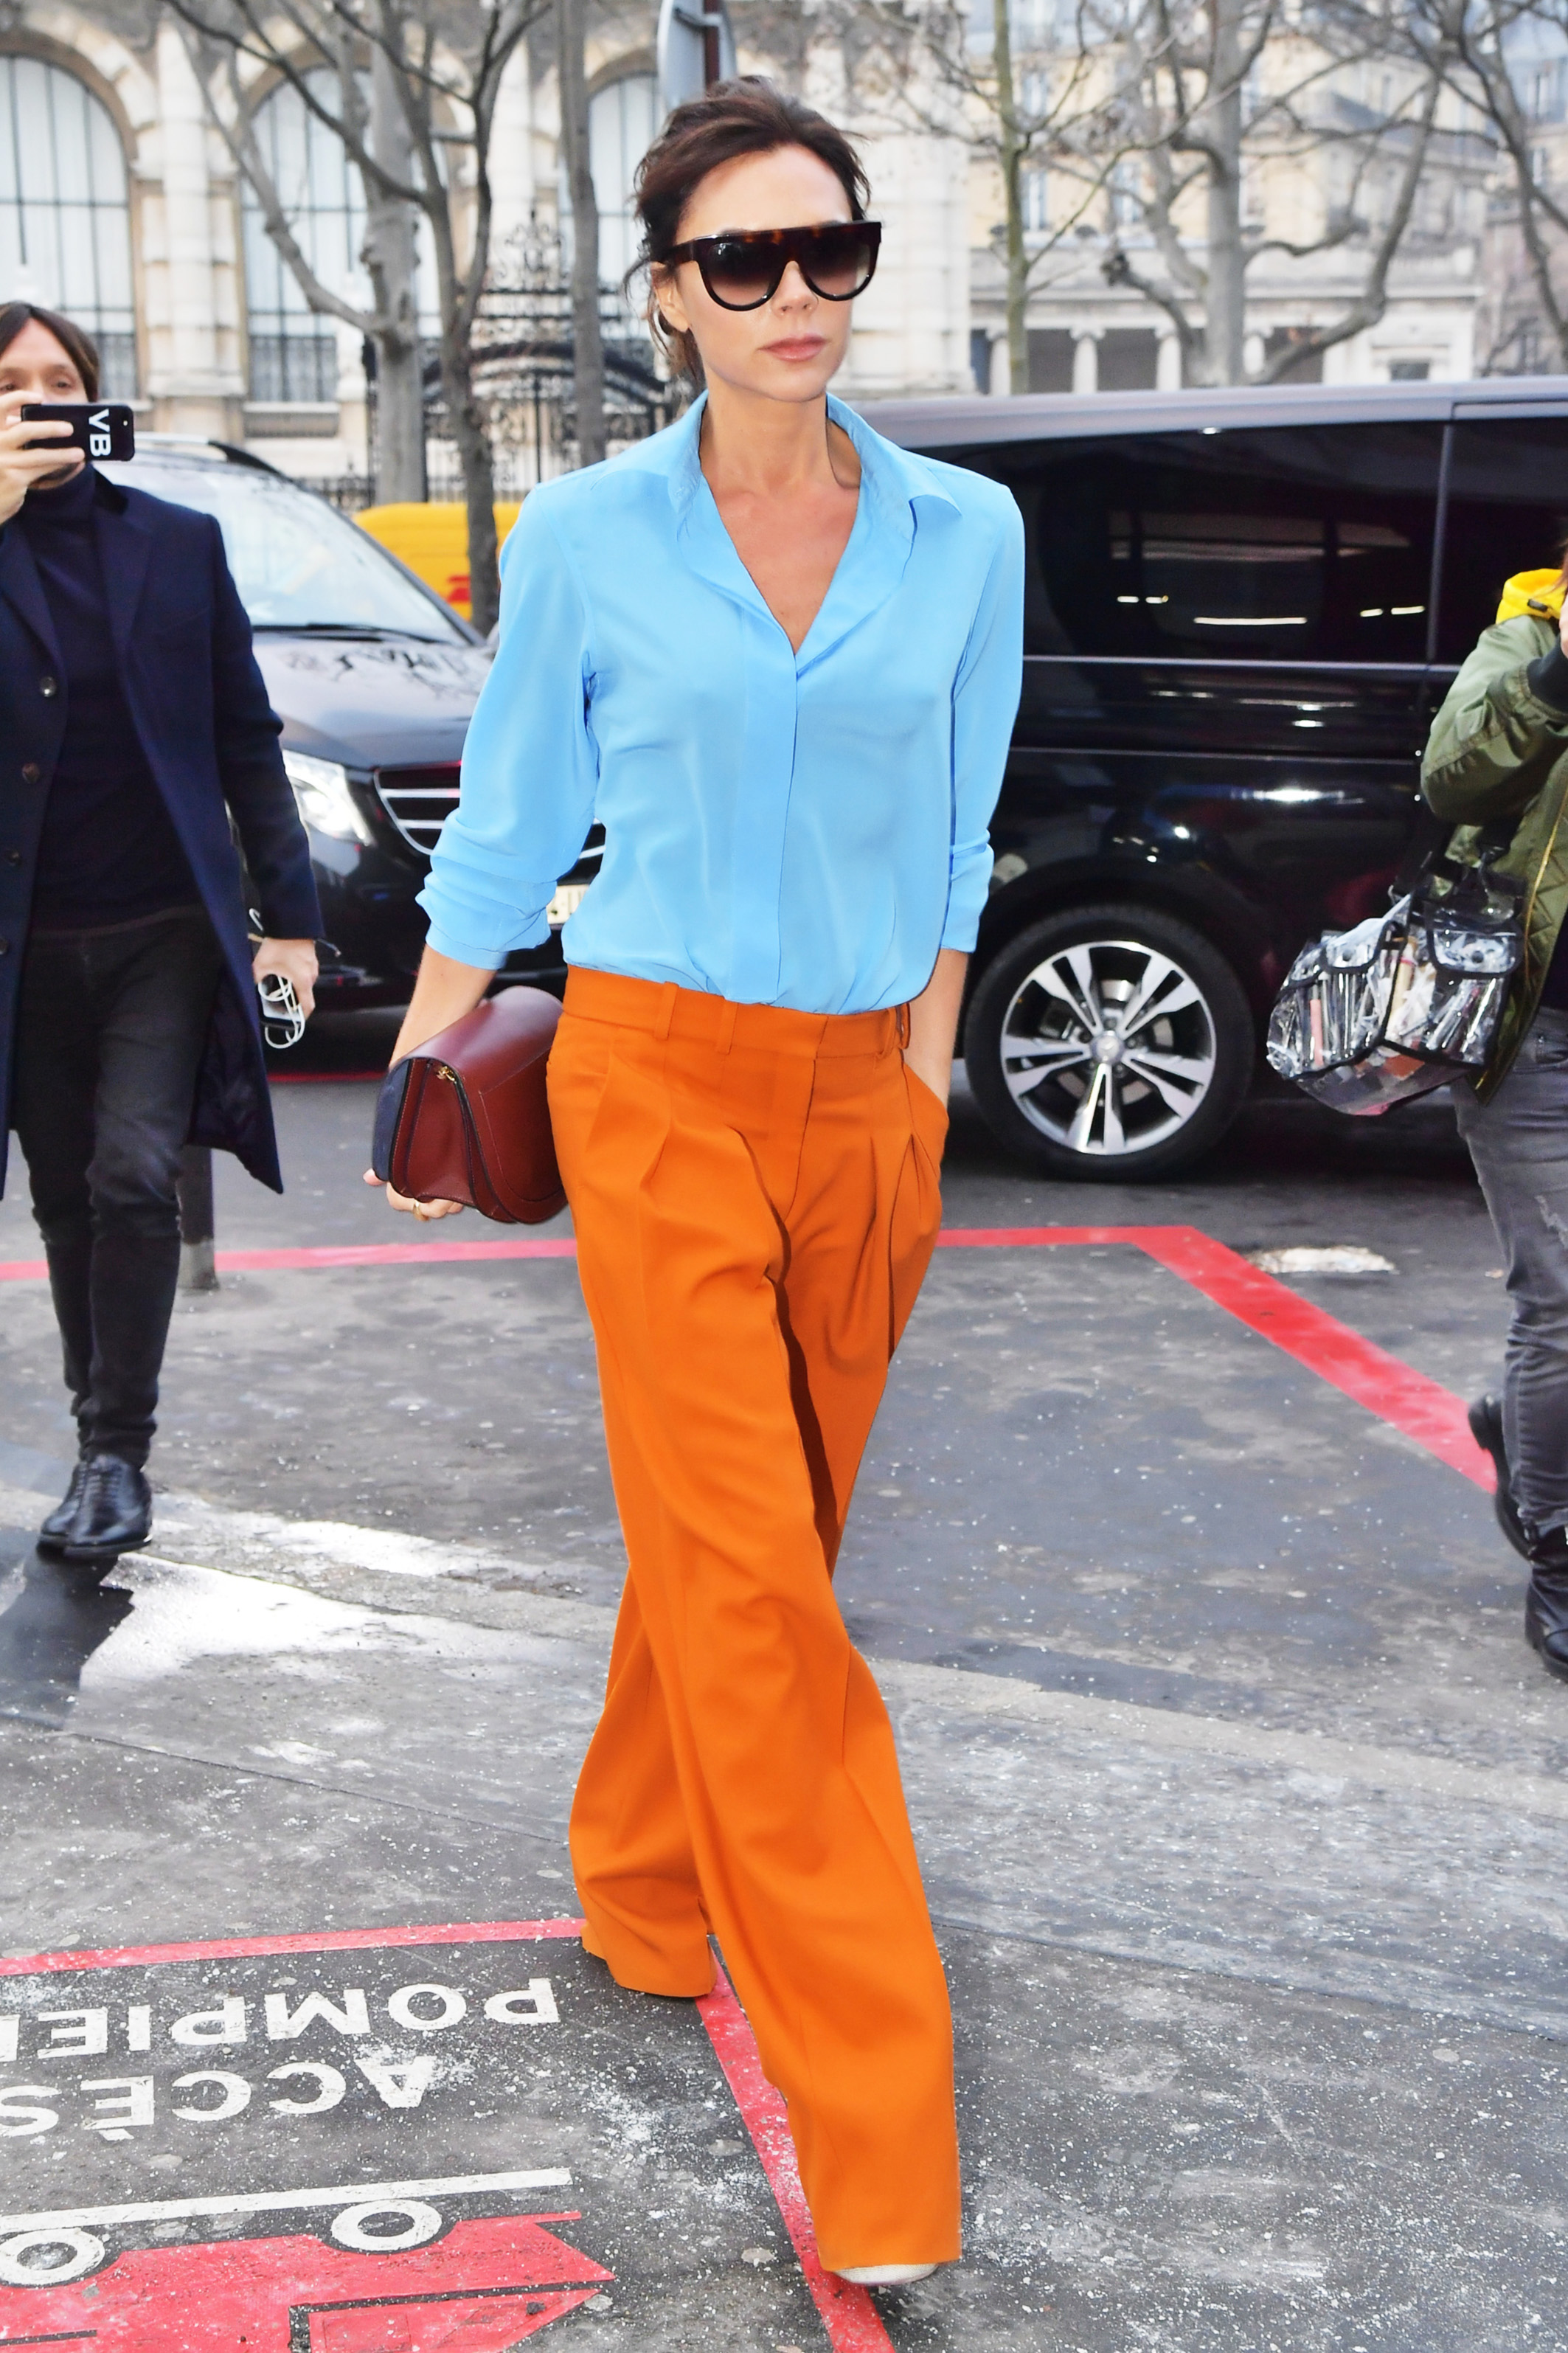 Victoria Beckham 39 S Best Fashion Looks Pictures Of